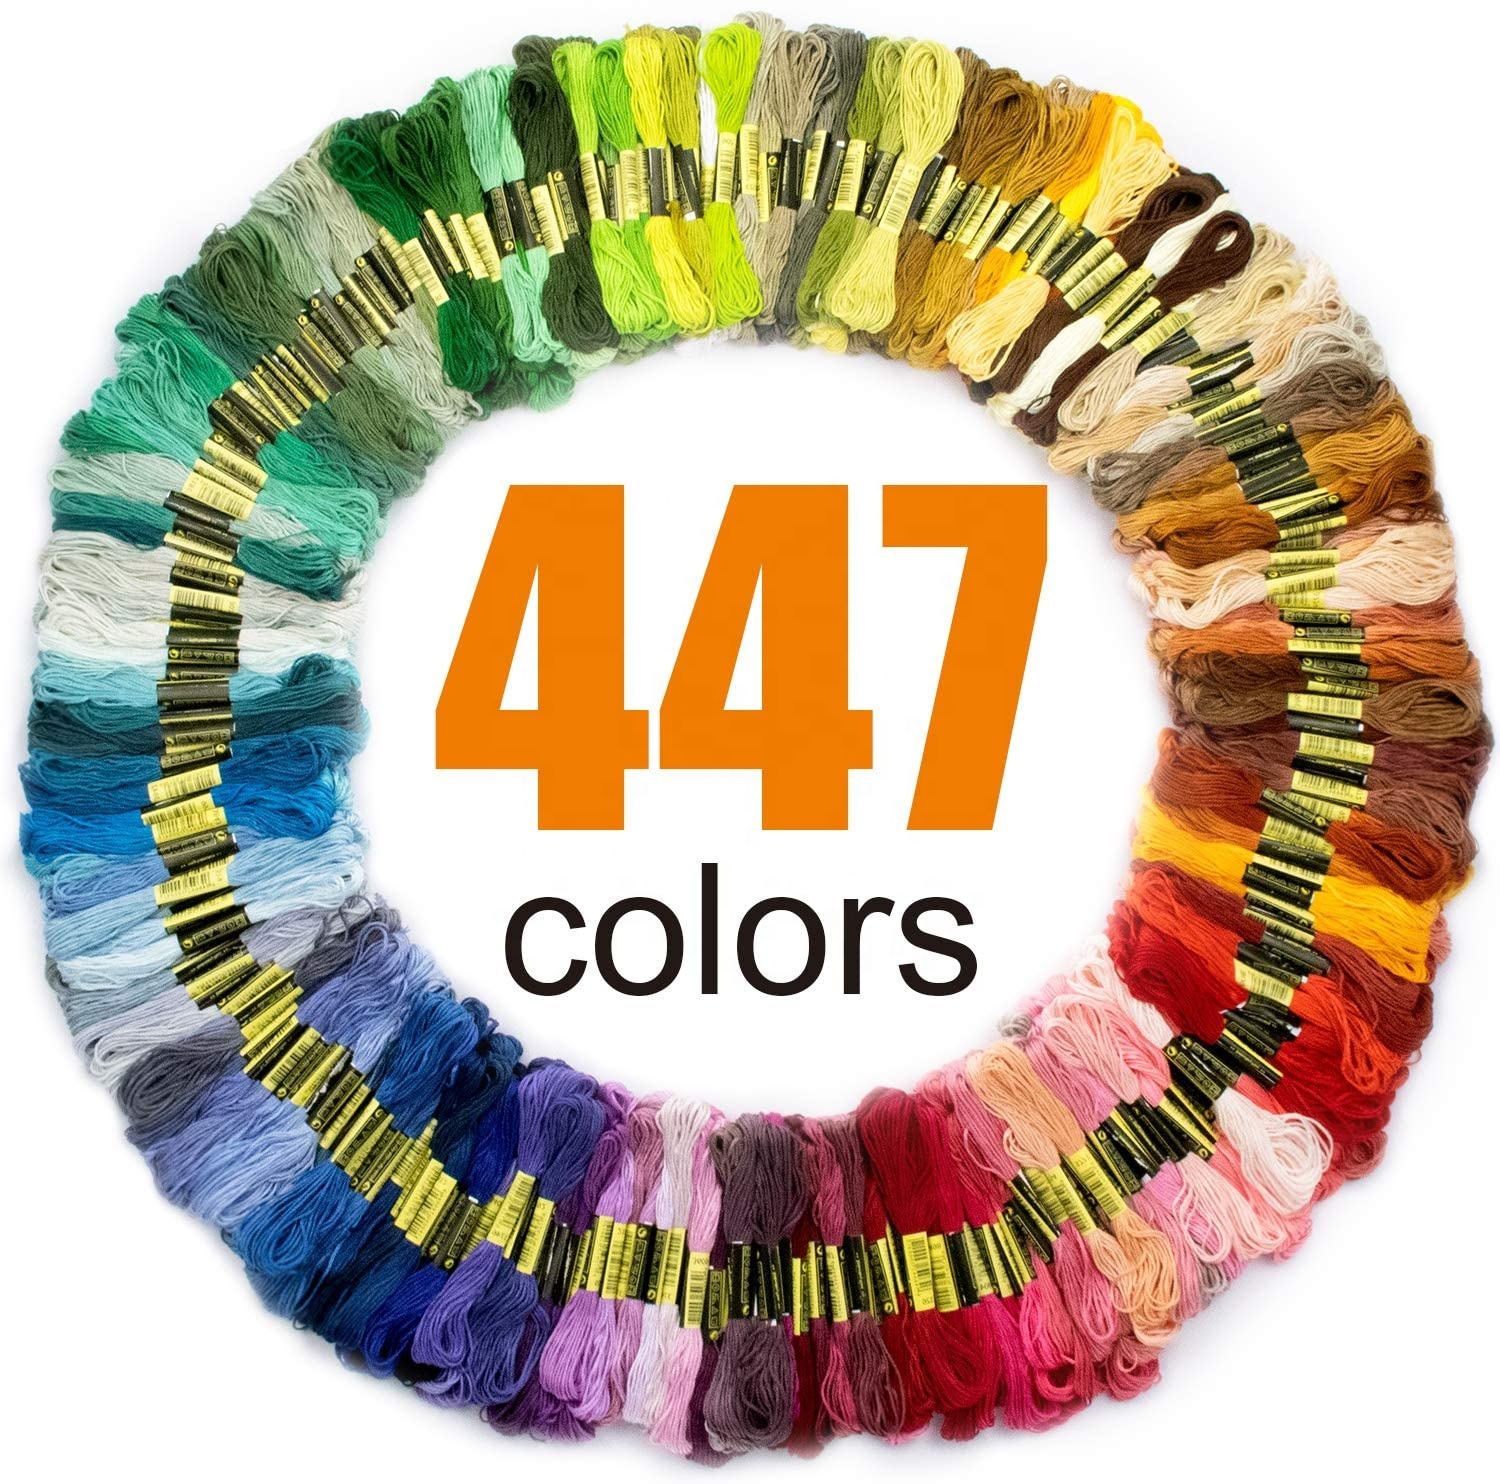 Premium Rainbow Color Embroidery Craft Floss Cotton Bracelet Yarn Cross Stitch Threads Set